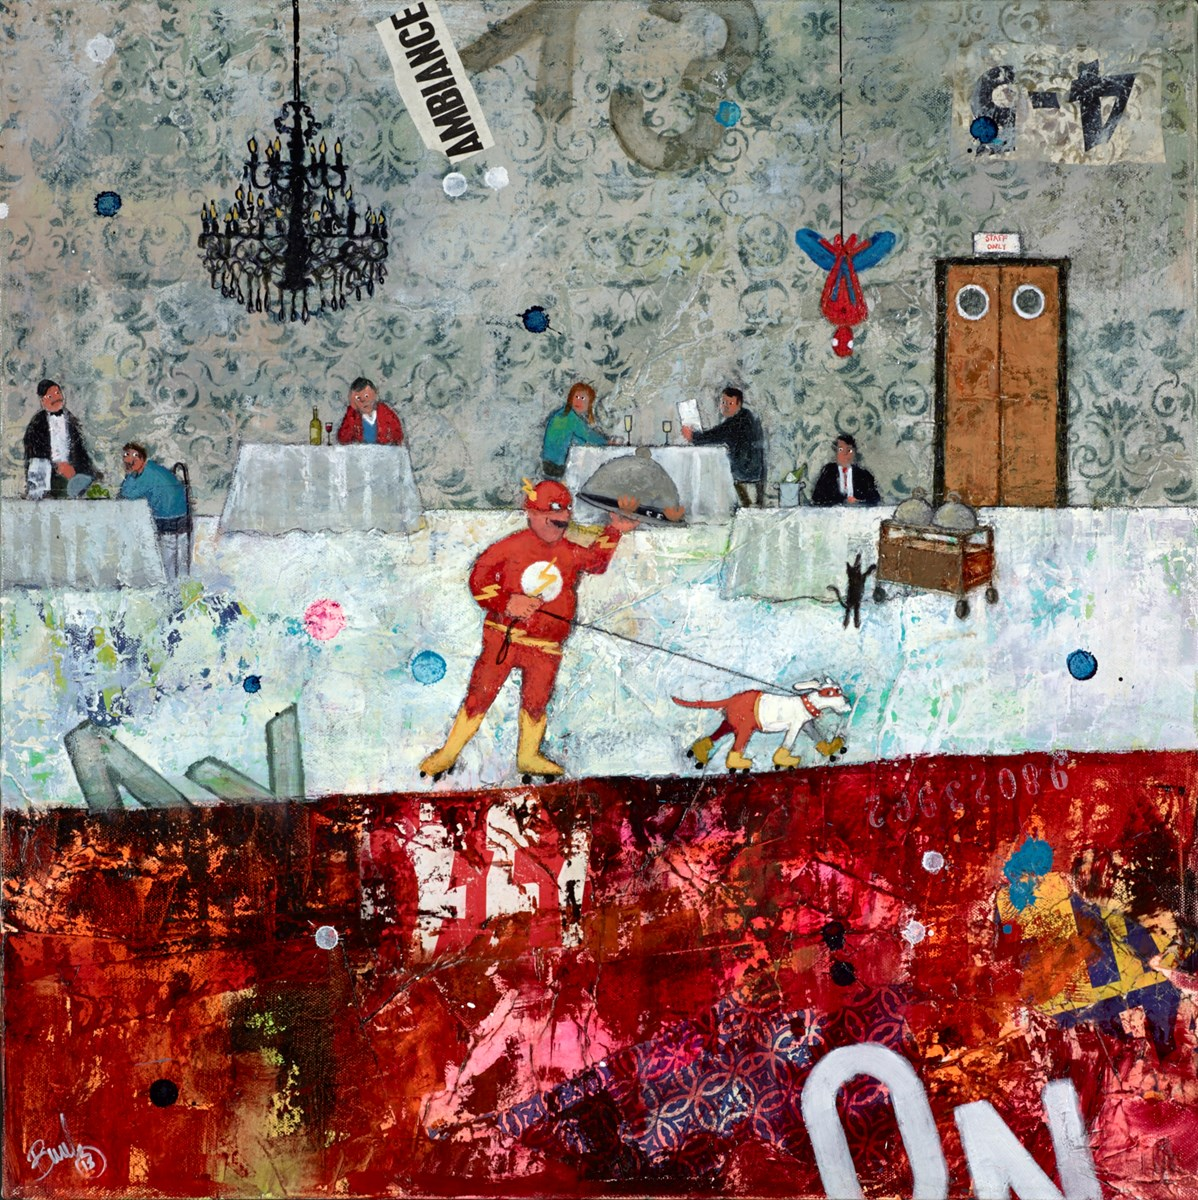 Ambiance by richard burel -  sized 24x24 inches. Available from Whitewall Galleries